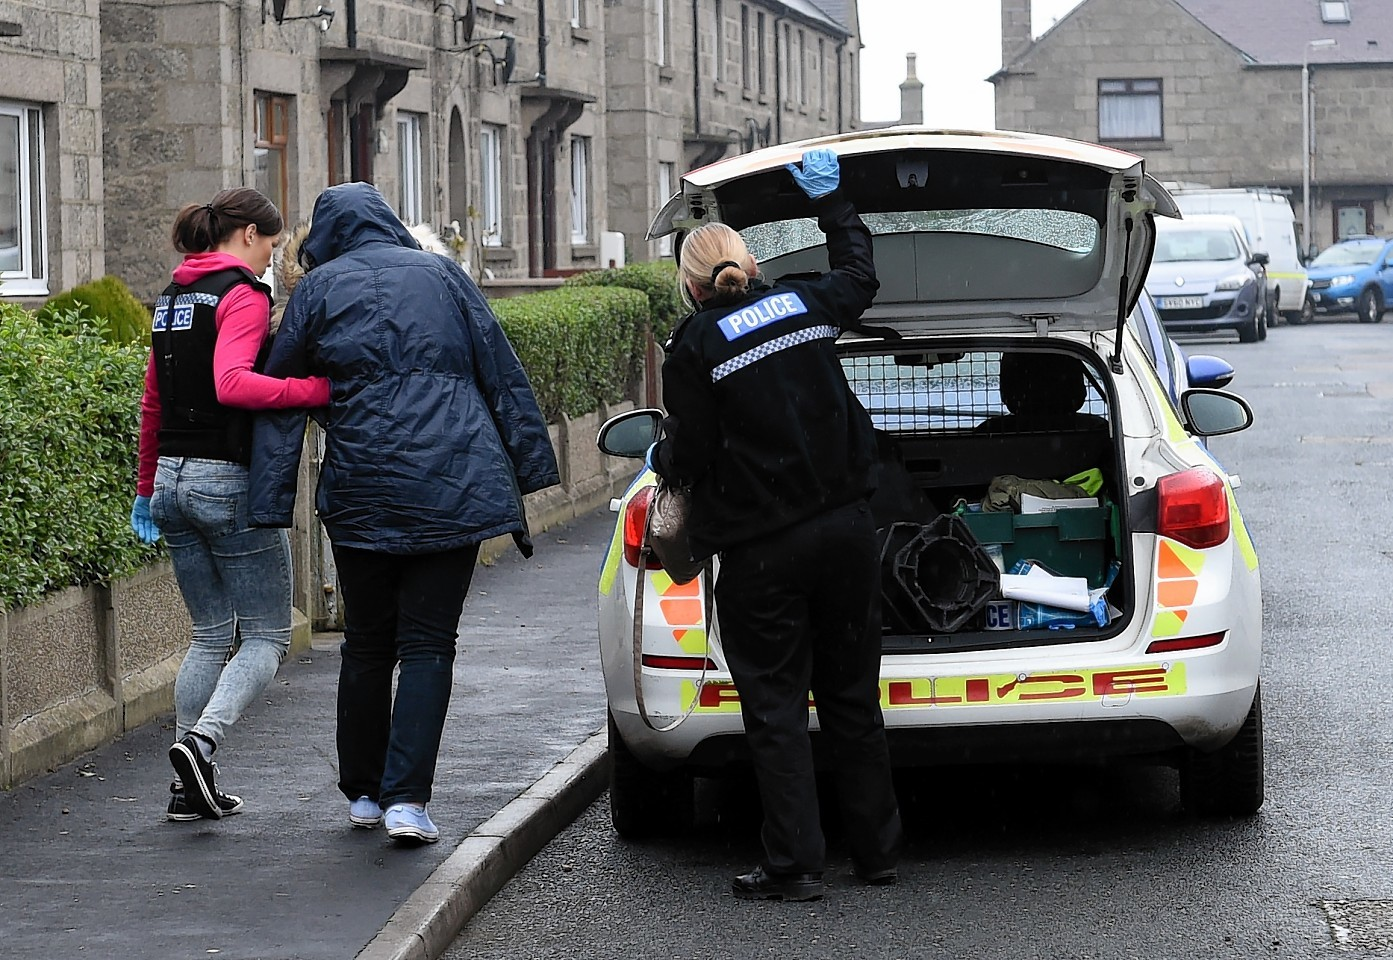 Police lead a suspect away following one of the raids